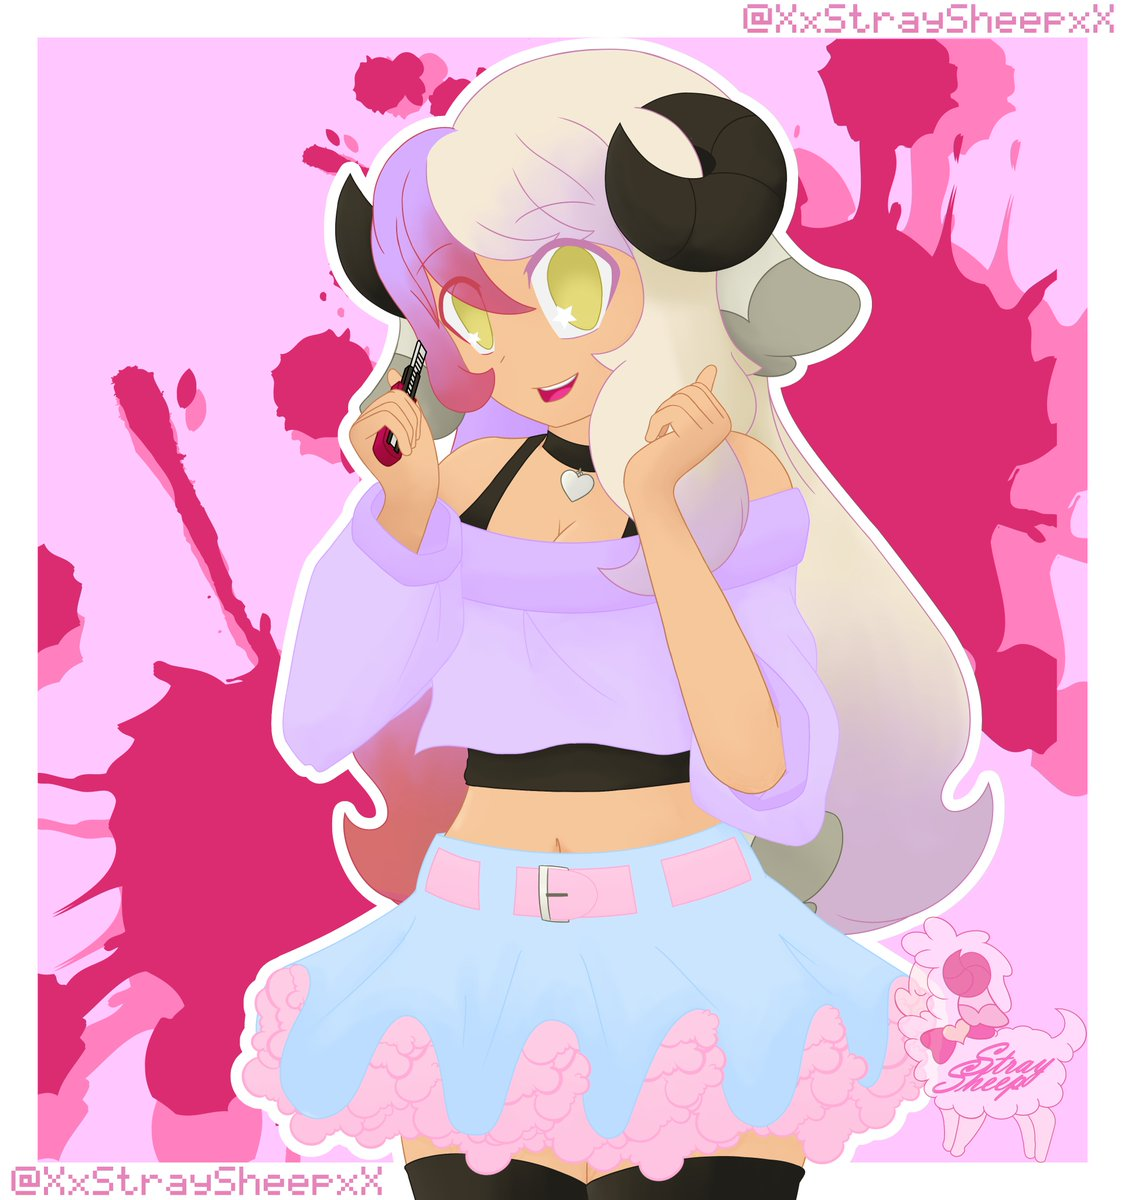 Made for myself after having a shitty year  Inspired by Kosame Amagai from Magical Girl Site, I made my mascot in a pastel goth outfit  Check Out my Pixiv if interested in my art 💖 two other versions are there too!  #menhera #yamikawaii #pastel #goth #cute https://t.co/mfeM2pWMRT